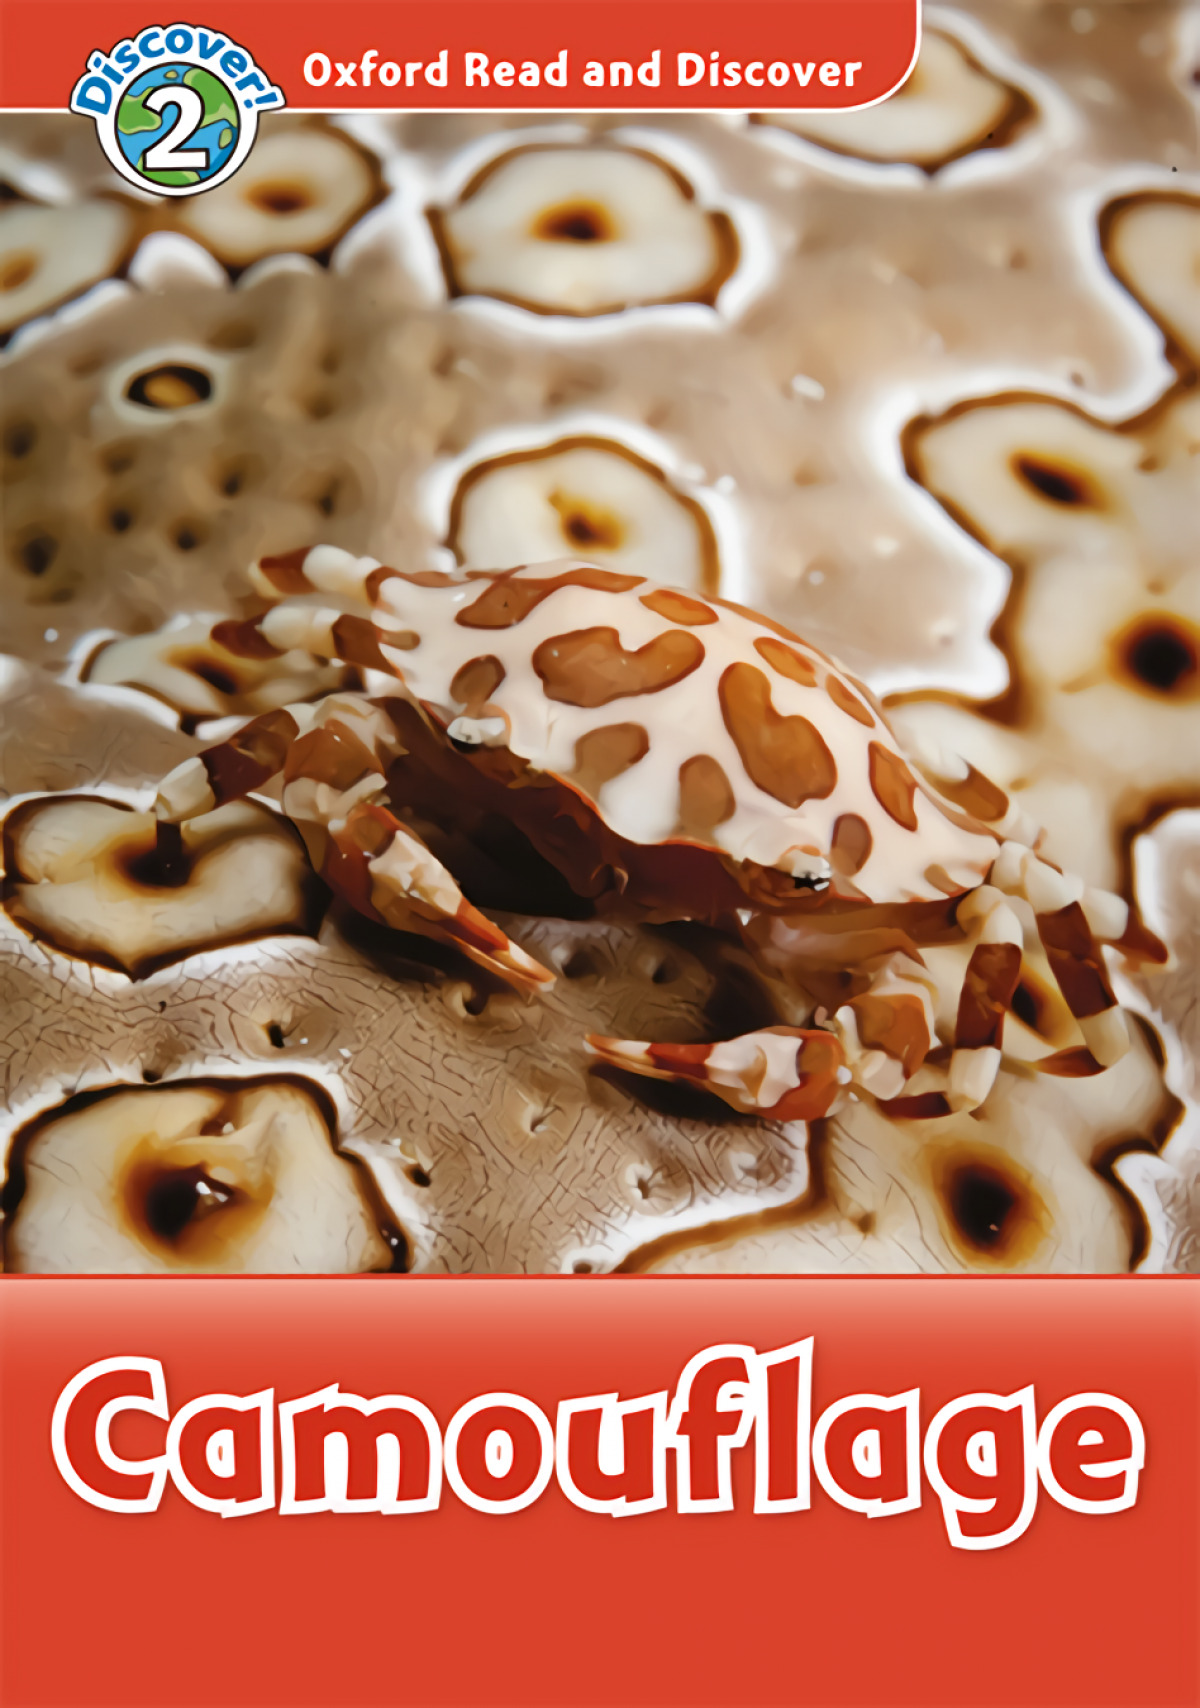 Oxford Read and Discover 2. Camouflage MP3 Pack